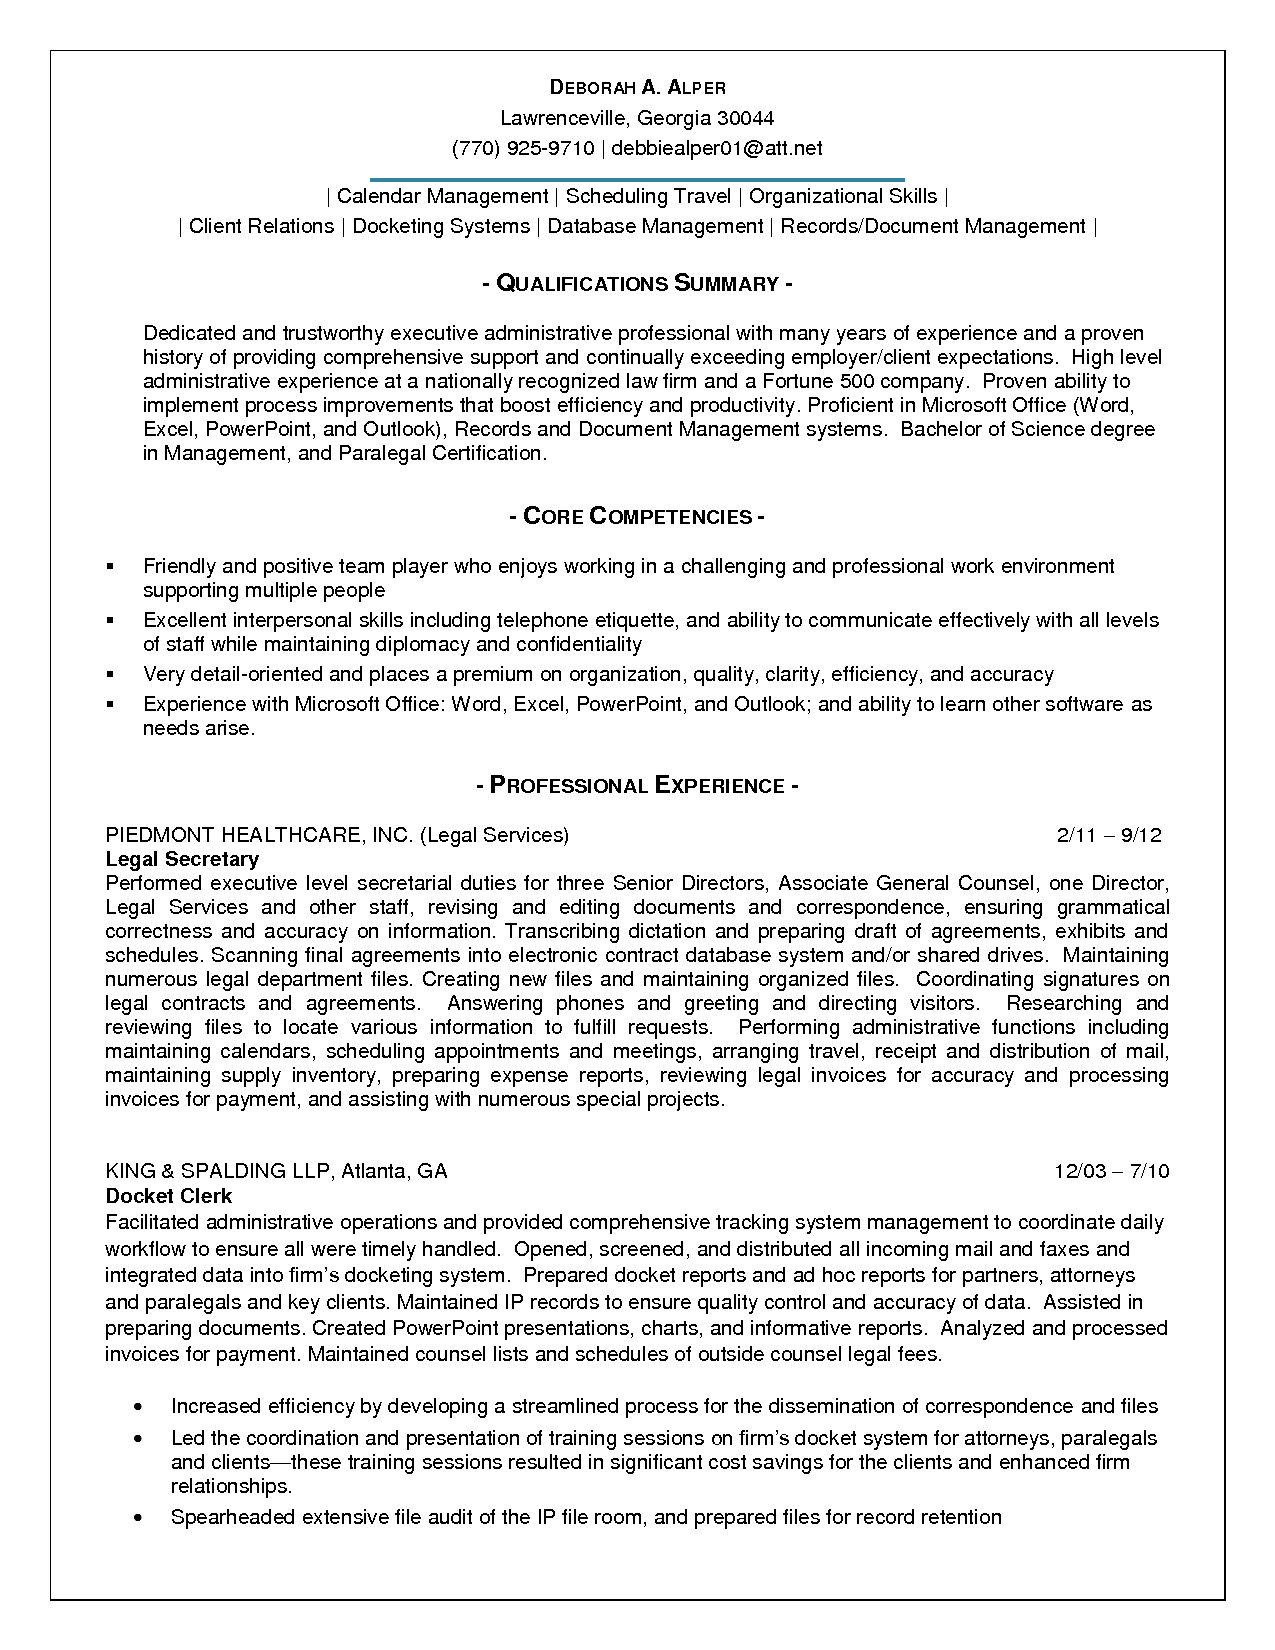 summary qualifications sample resume for administrative assistant  - summary qualifications sample resume for administrative assistant perfect